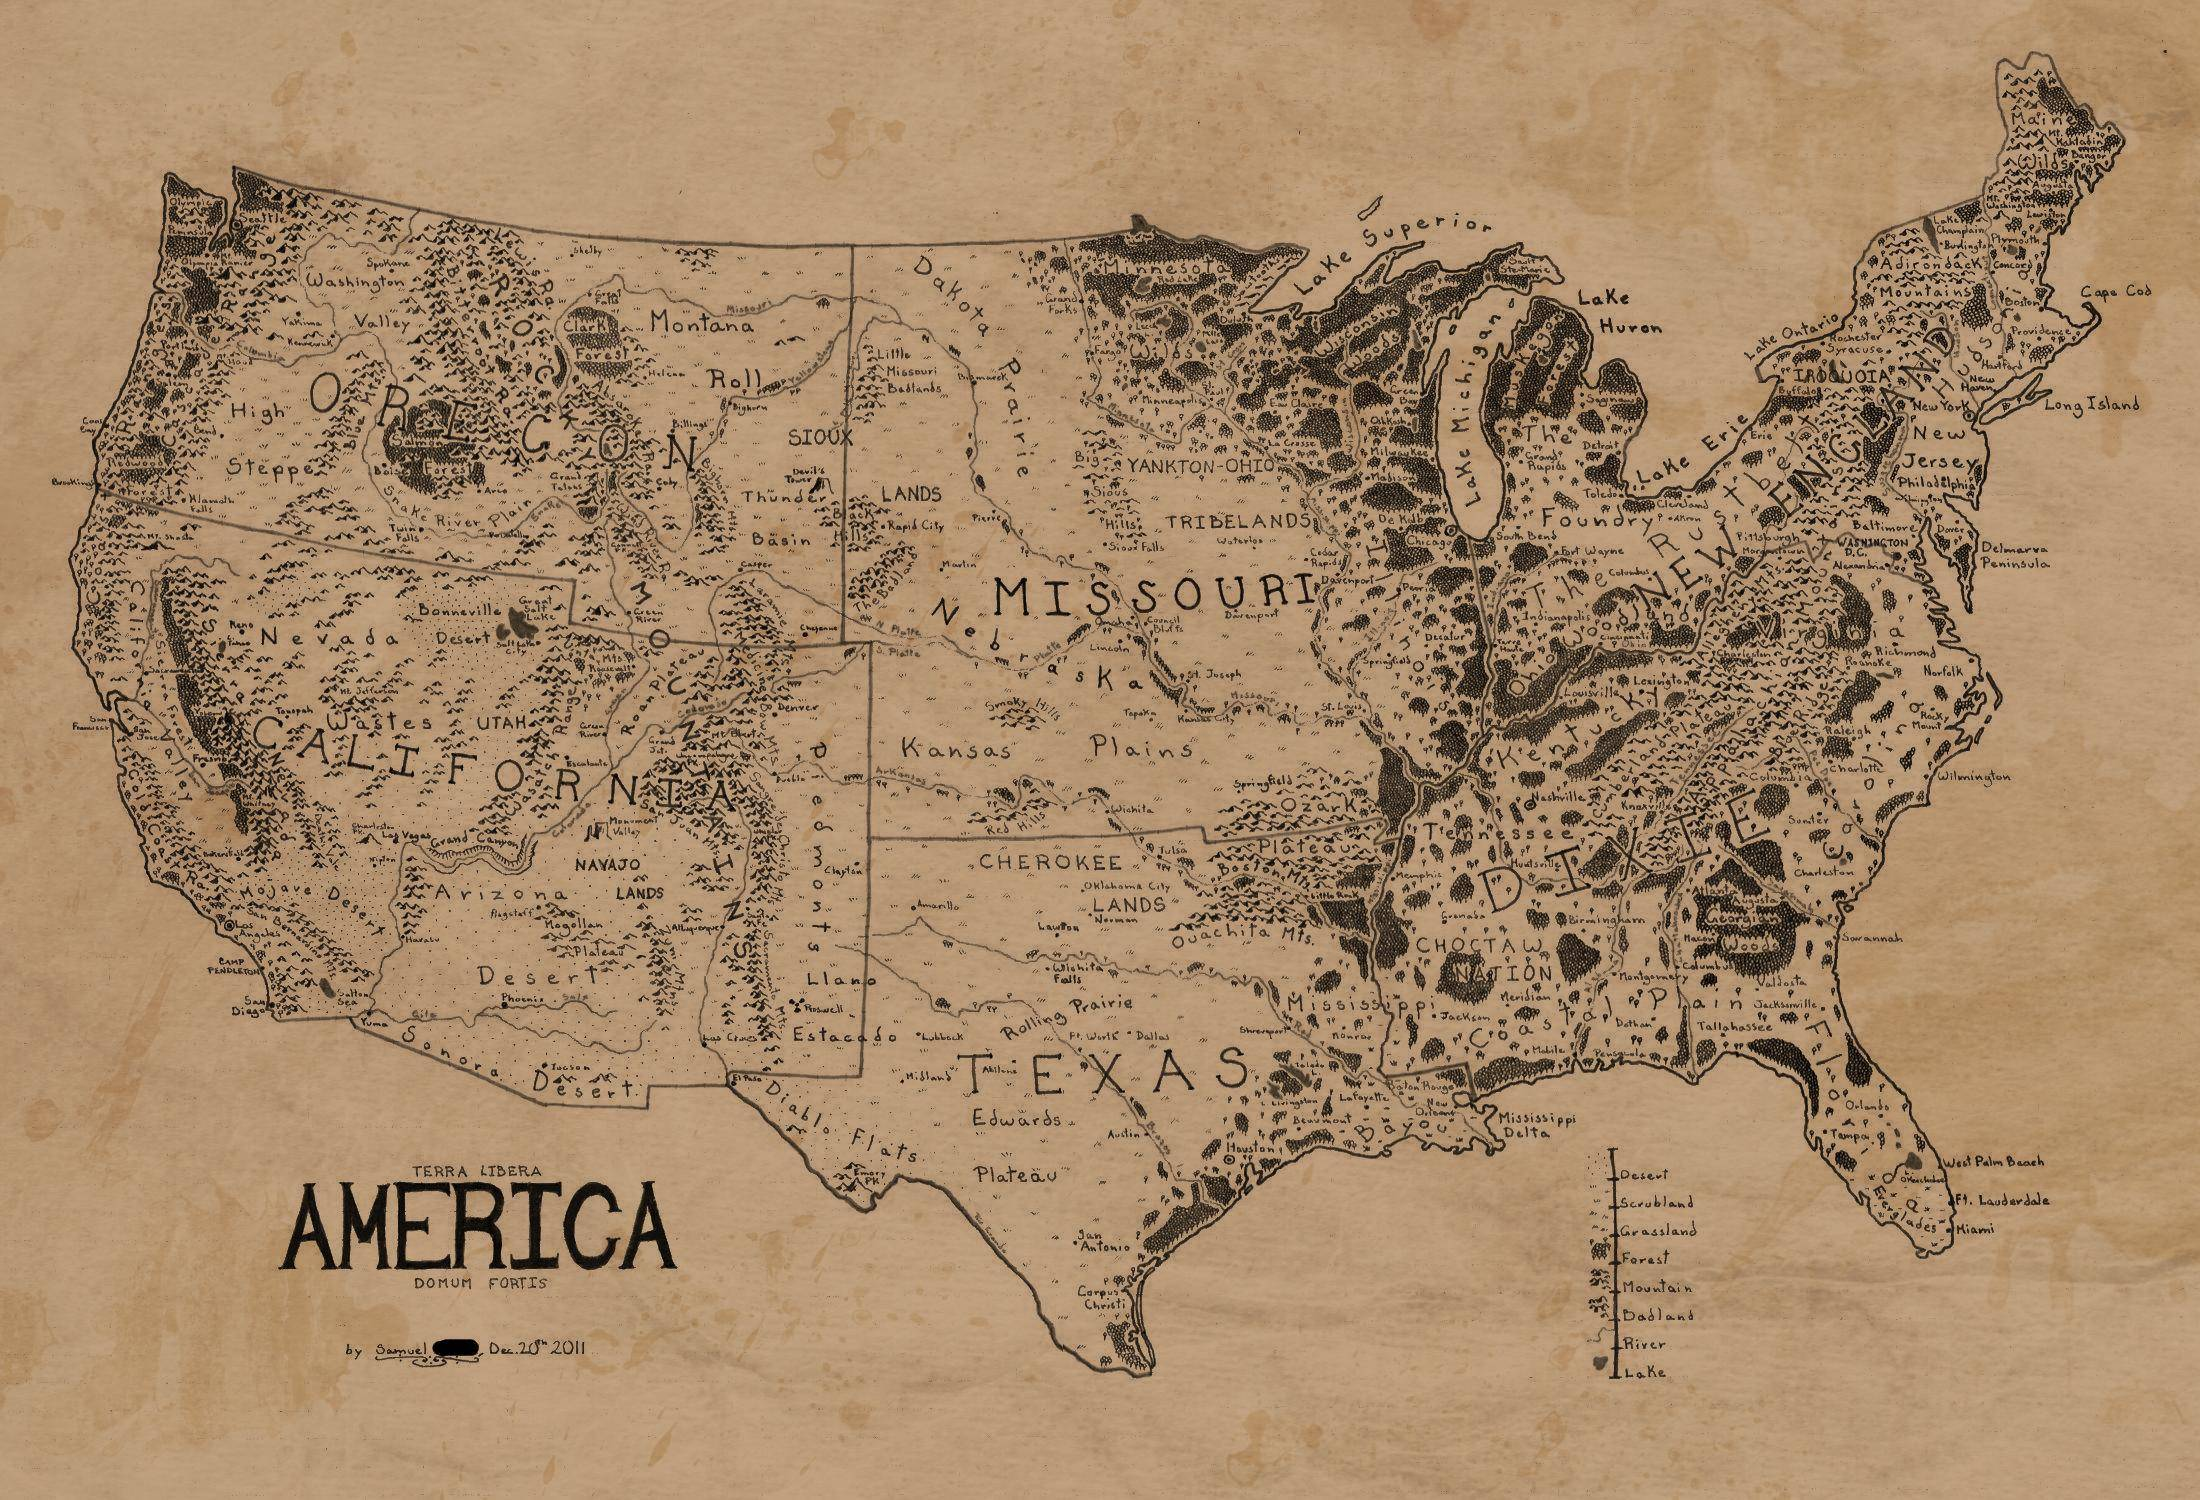 A map of the United States drawn in the style of Lord of the Rings – Lord of the Rings Map Middle Earth